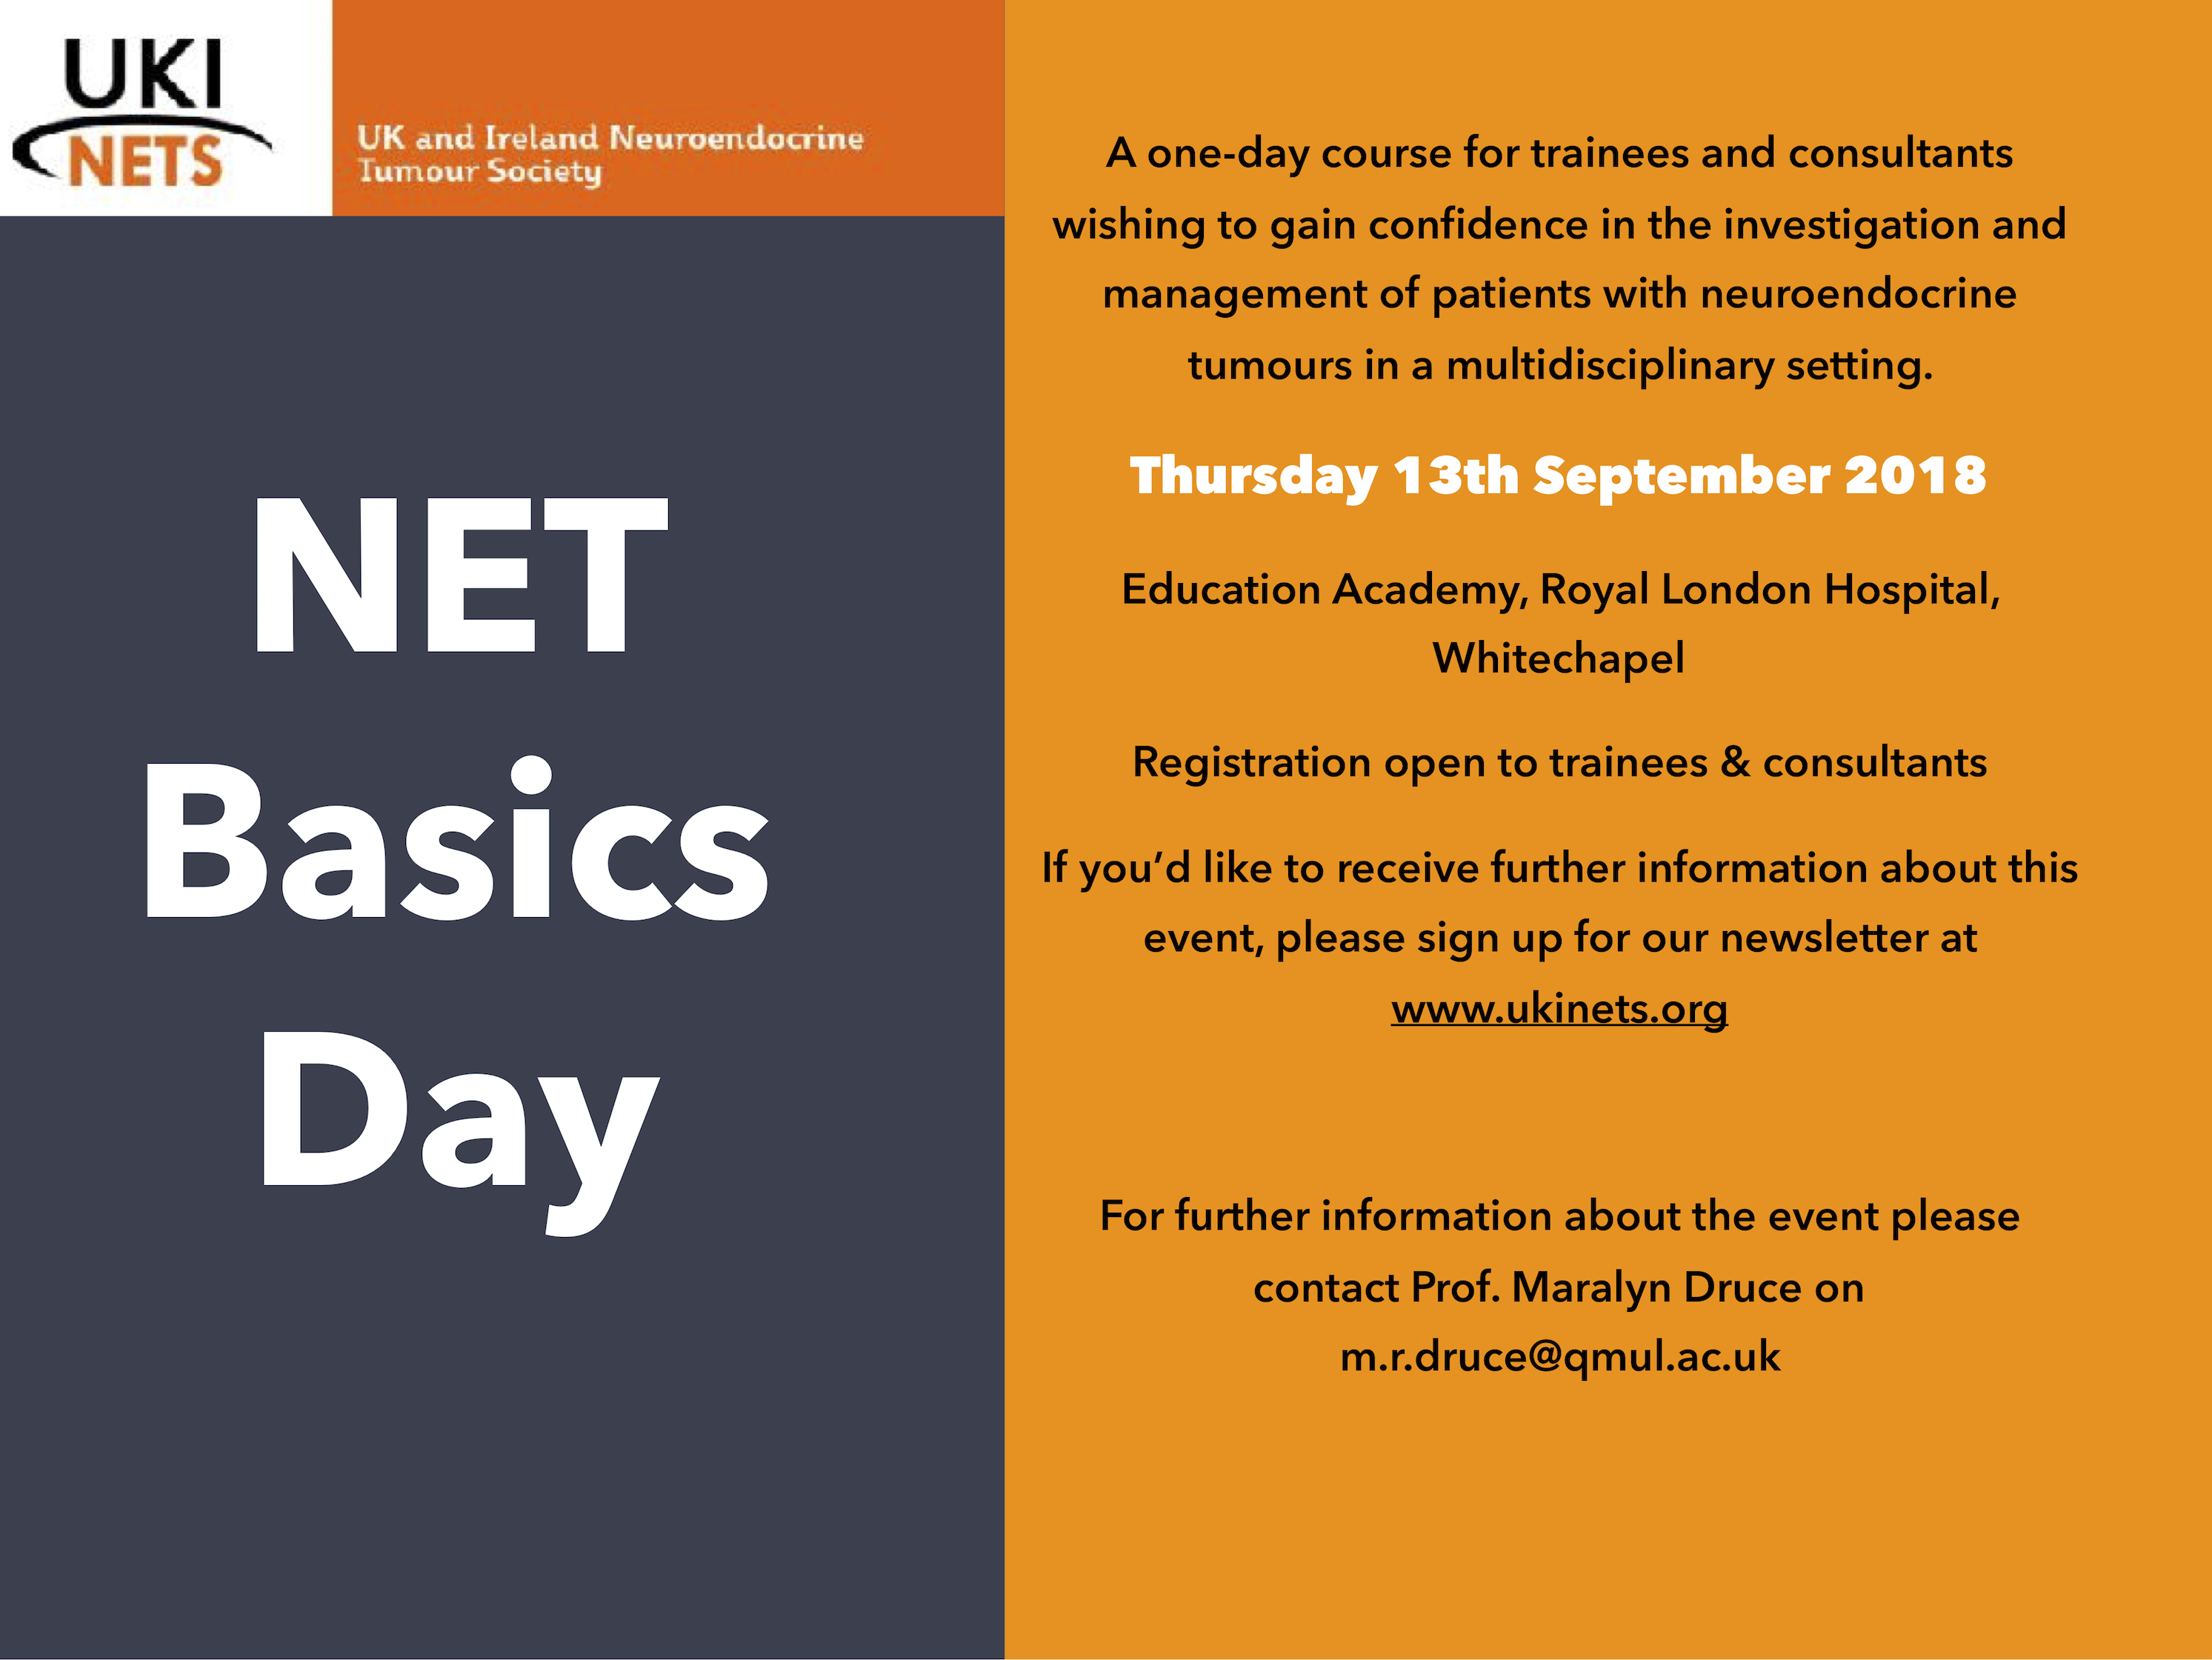 NET Basics Day save the date flyer